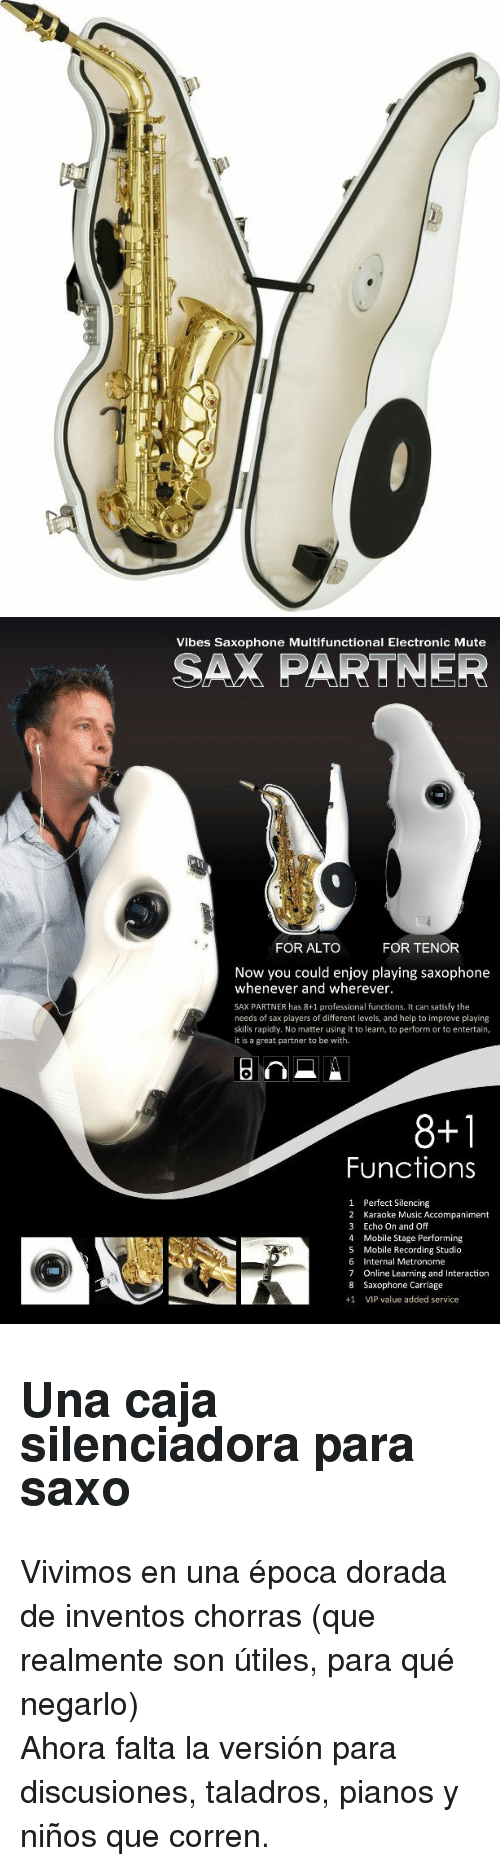 tenor: Vibes Saxophone Multifunctional Electronic Mute  SAX PARTNER  FOR ALTO  FOR TENOR  Now you could enjoy playing saxophone  whenever and wherever.  SAX PARTNER has 8+1 professional functions. It can satisfy the  needs of sax players of different levels, and help to improve playing  skills rapidly. No matter using it to learn, to perform or to entertain  it is a great partner to be with  8+1  Functions  1  2  3  4  5  6  7  8  +1  Perfect Silencing  Karaoke Music Accompaniment  Echo On and Off  Mobile Stage Performing  Mobile Recording Studio  Internal Metronome  Online Learning and Interaction  Saxophone Carriage  VIP value added service <h2>Una caja silenciadora para saxo</h2><p>Vivimos en una época dorada de inventos chorras (que realmente son útiles, para qué negarlo)</p><p>Ahora falta la versión para discusiones, taladros, pianos y niños que corren.</p>